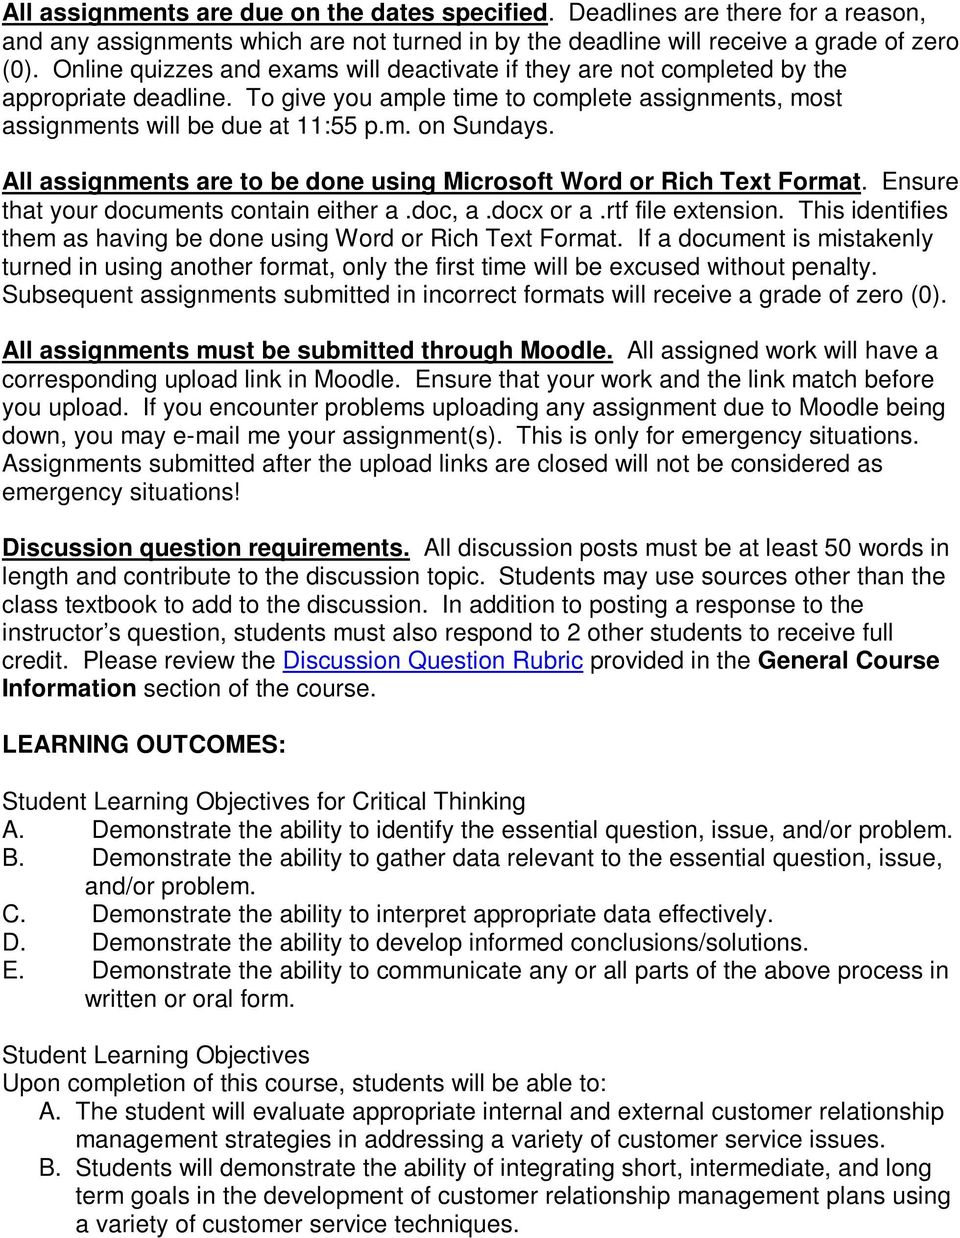 All assignments are to be done using Microsoft Word or Rich Text Format. Ensure that your documents contain either a.doc, a.docx or a.rtf file extension.